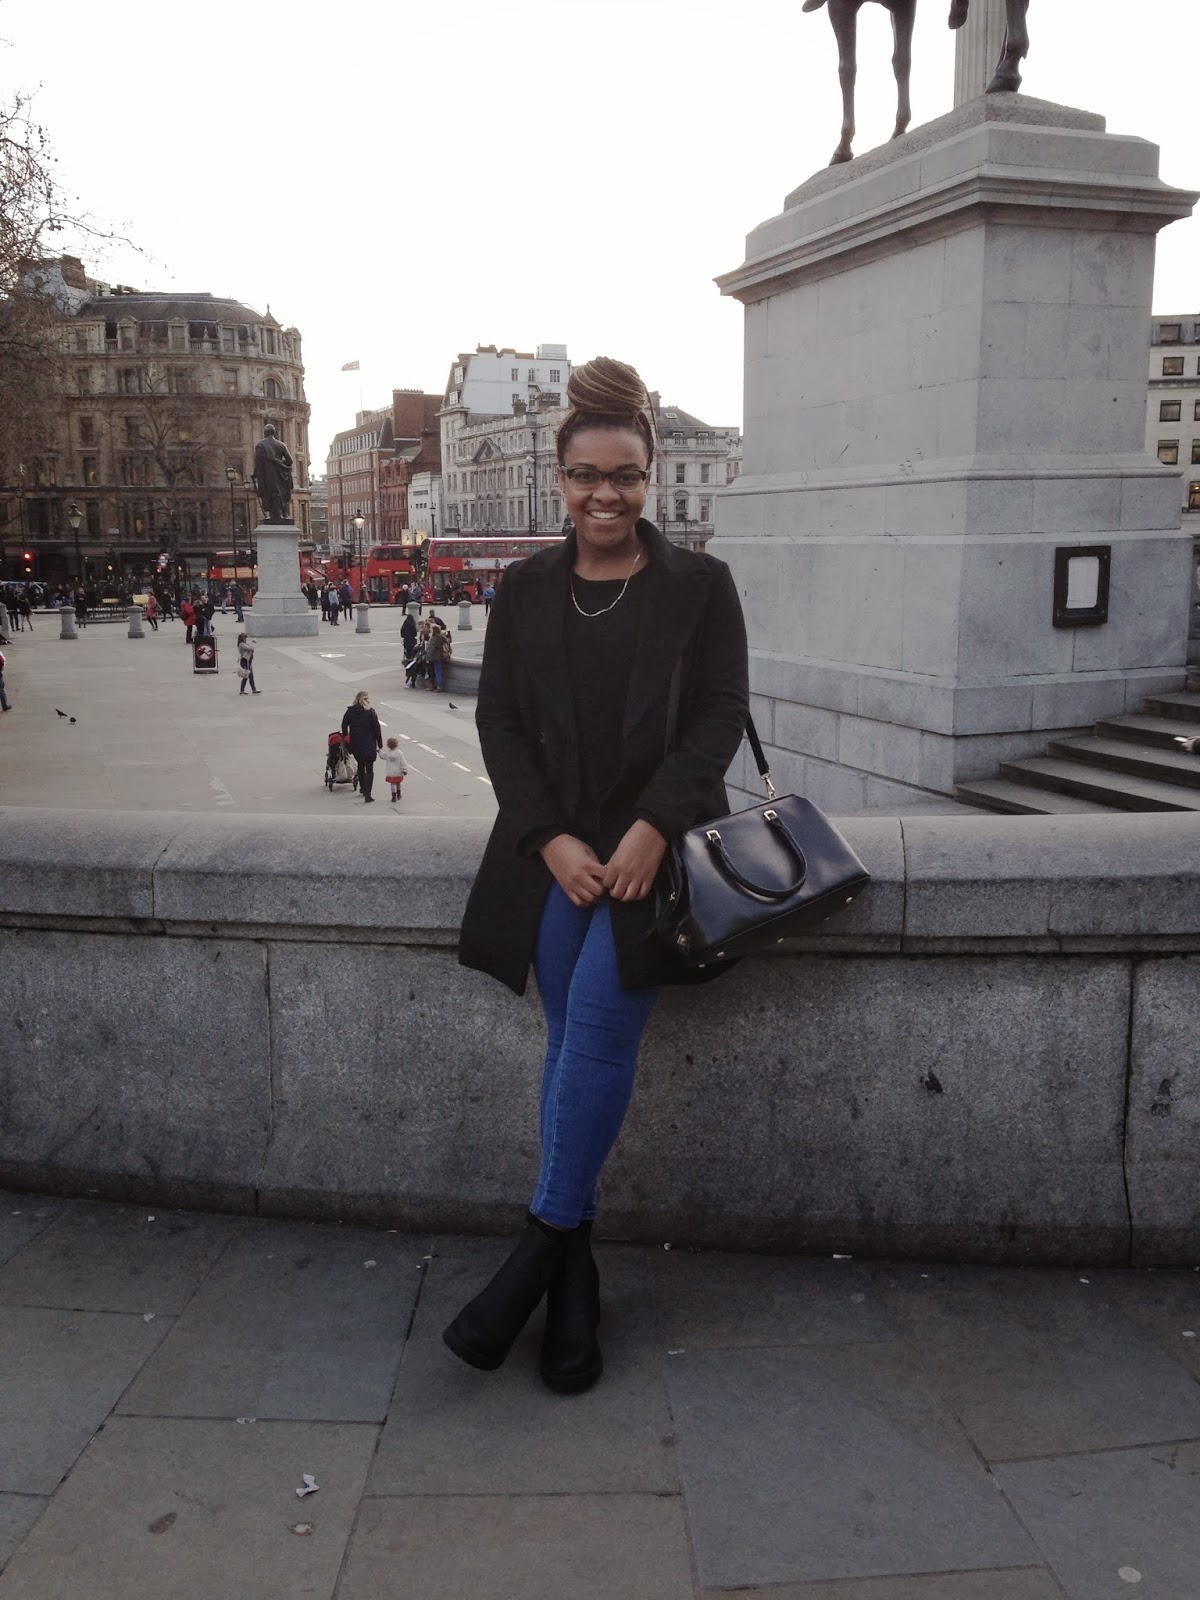 Trafalgar Square London New Look Chunky Chelsea Boots ASOS Blue Uber High Waisted Jeggings Zara Black Double Breasted Coat